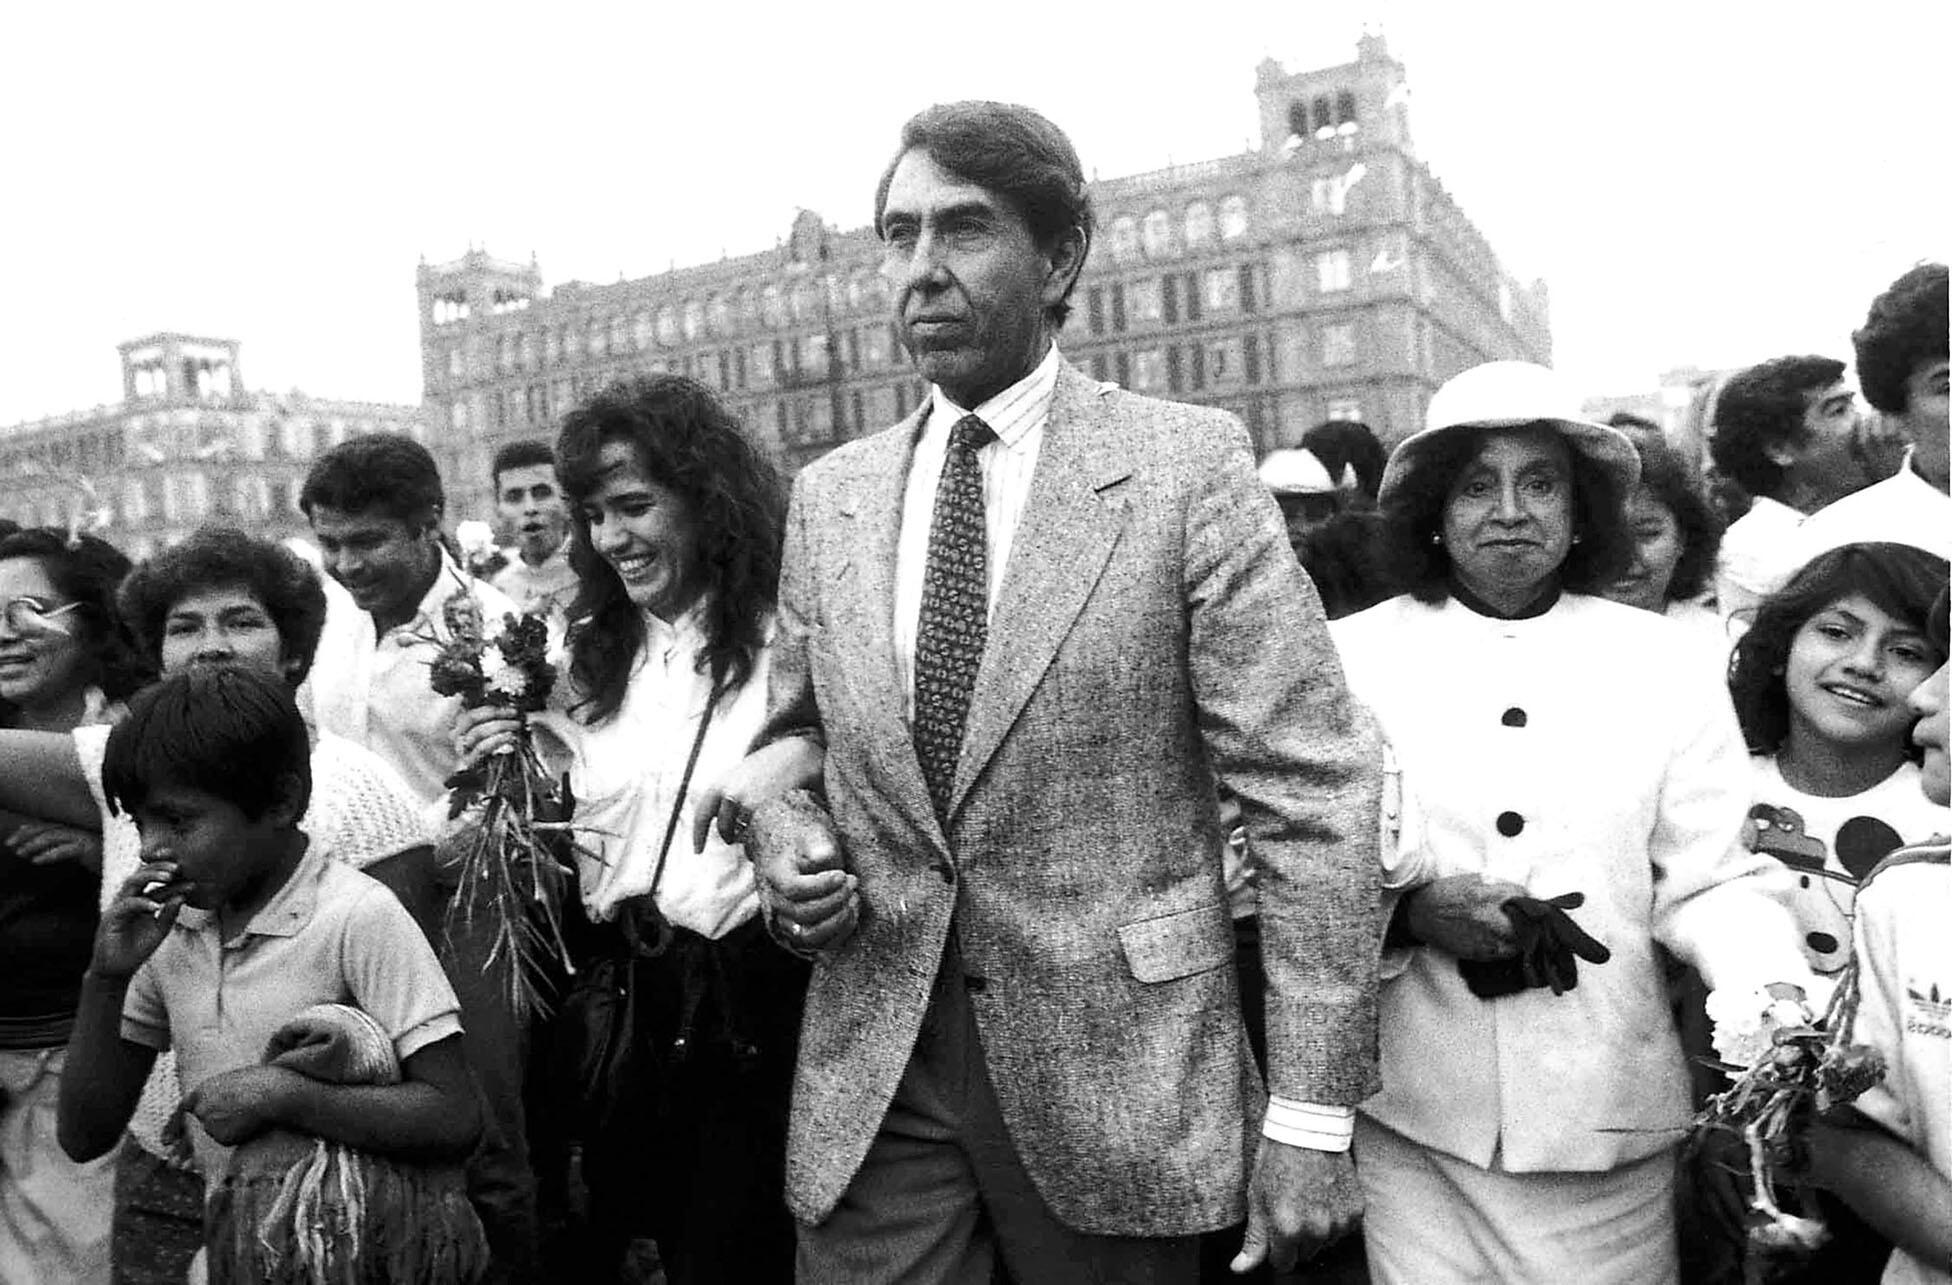 Cuauhtémoc Cárdenas campaigning during his 1988 presidential bid in Mexico. (Photo from WikiMexico.)